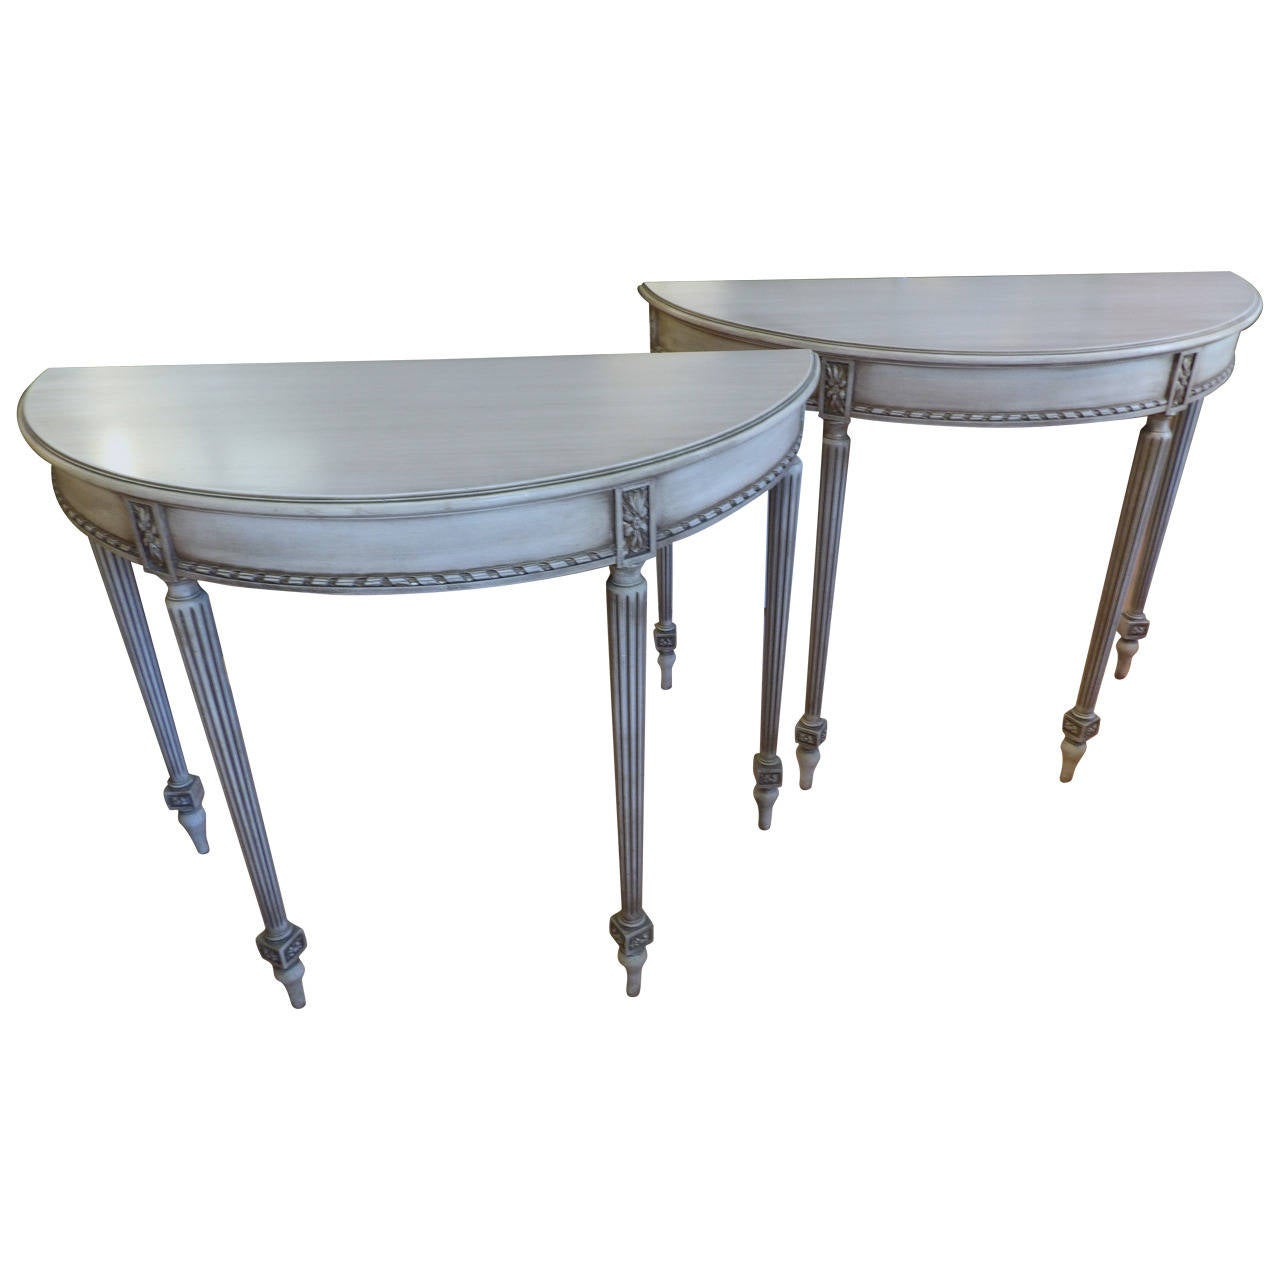 Pair Of Sheraton Style Demilune Tables At 1stdibs